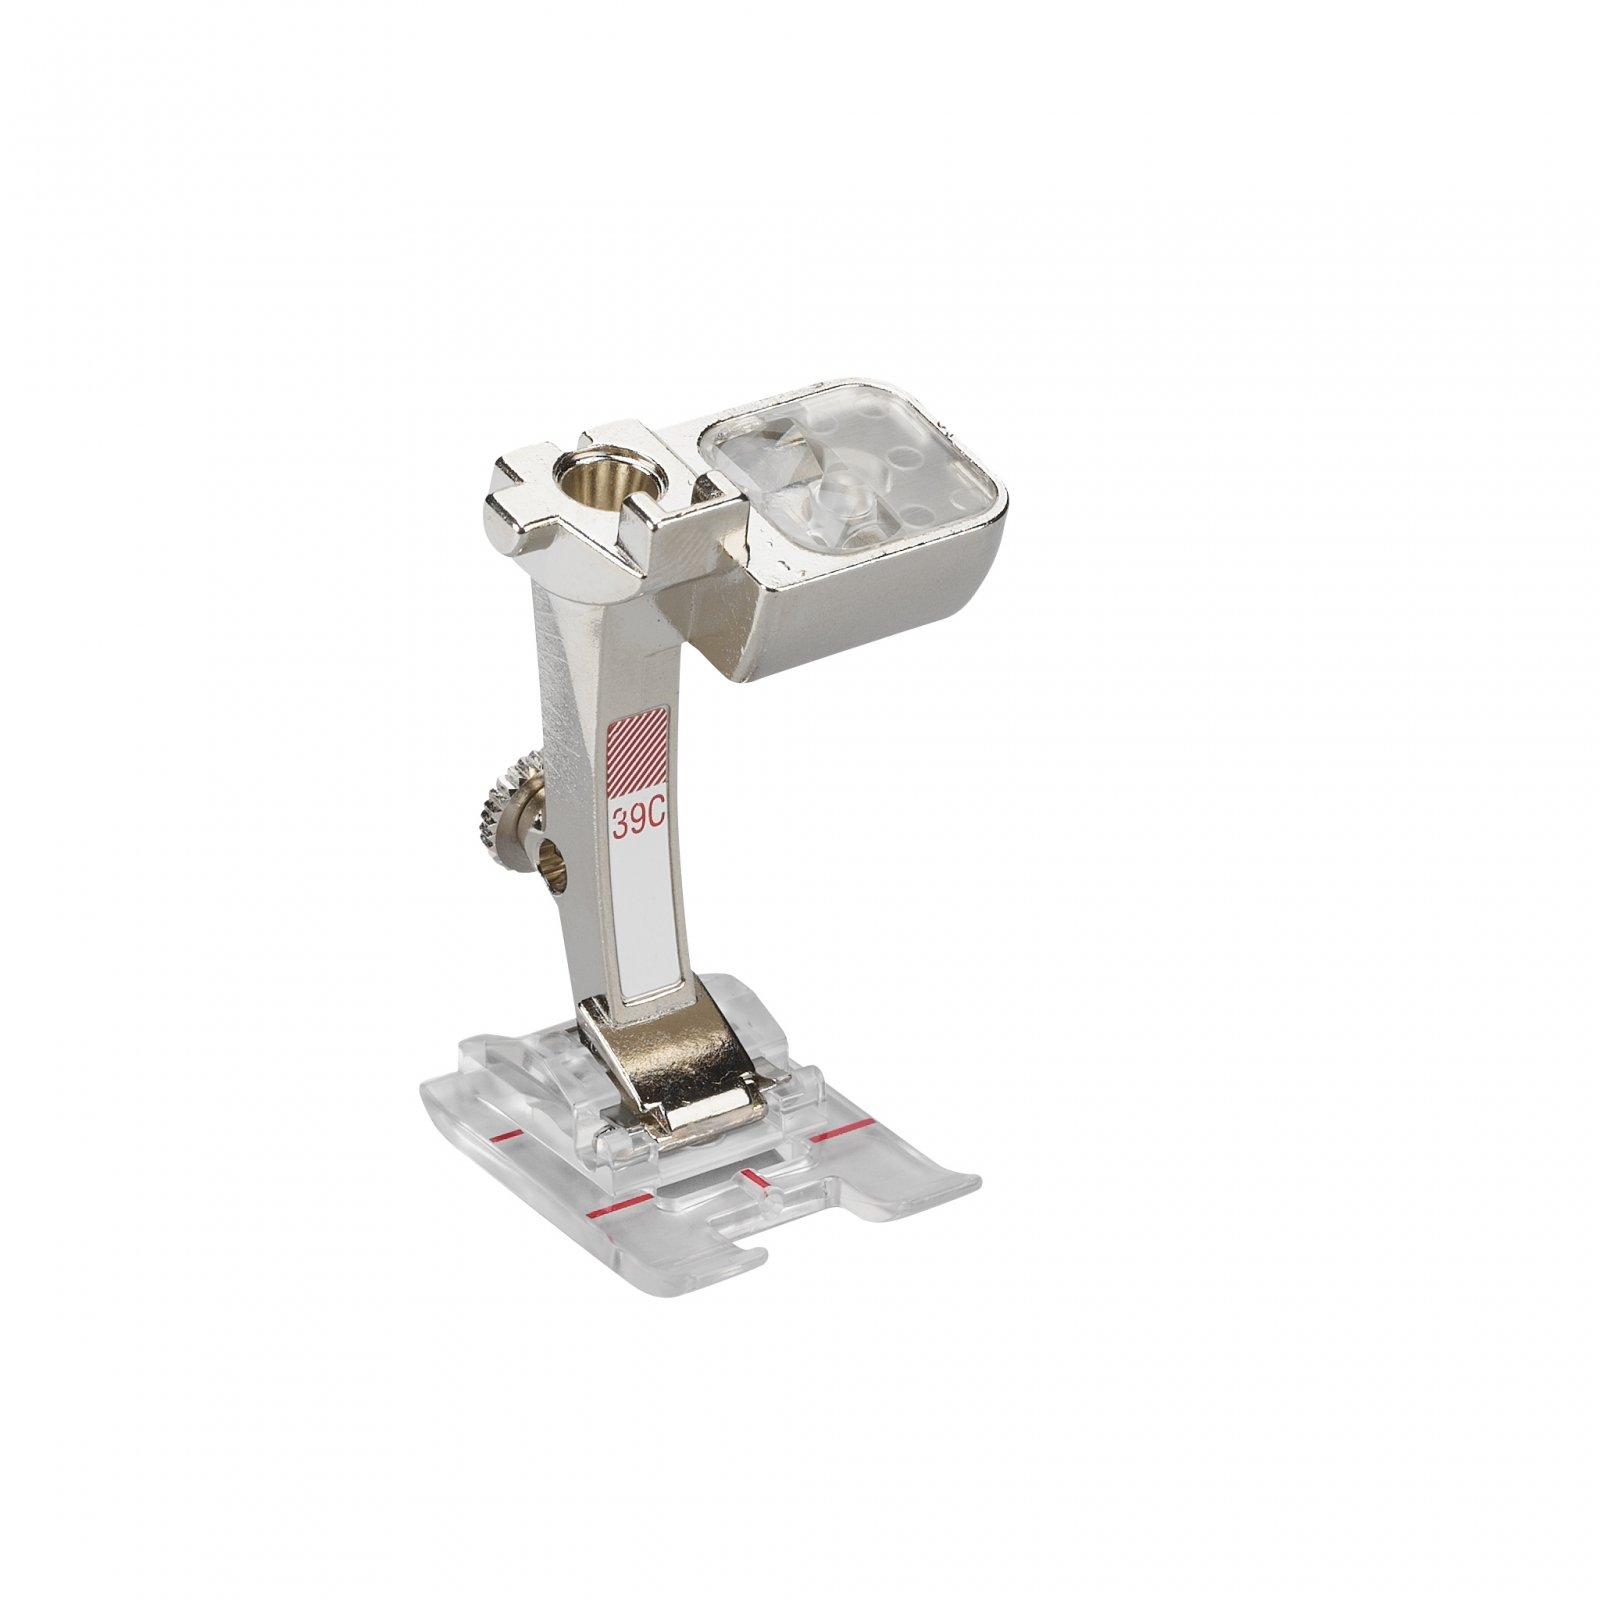 #39C Embroidery Foot with Clear Sole BERNINA